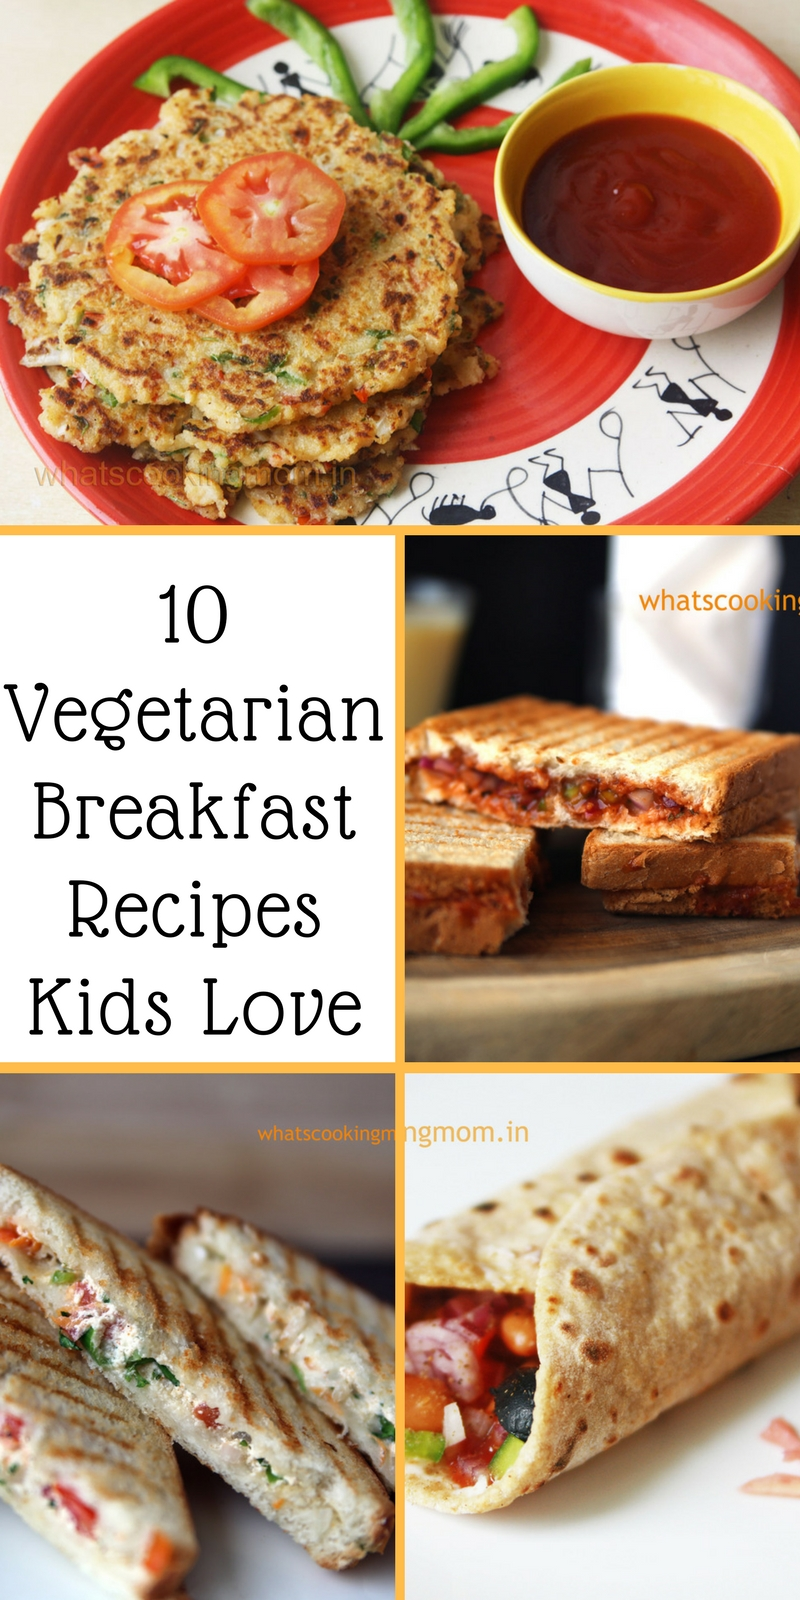 10 Vegetarian Breakfast Recipes Kids Love Whats Cooking Mom